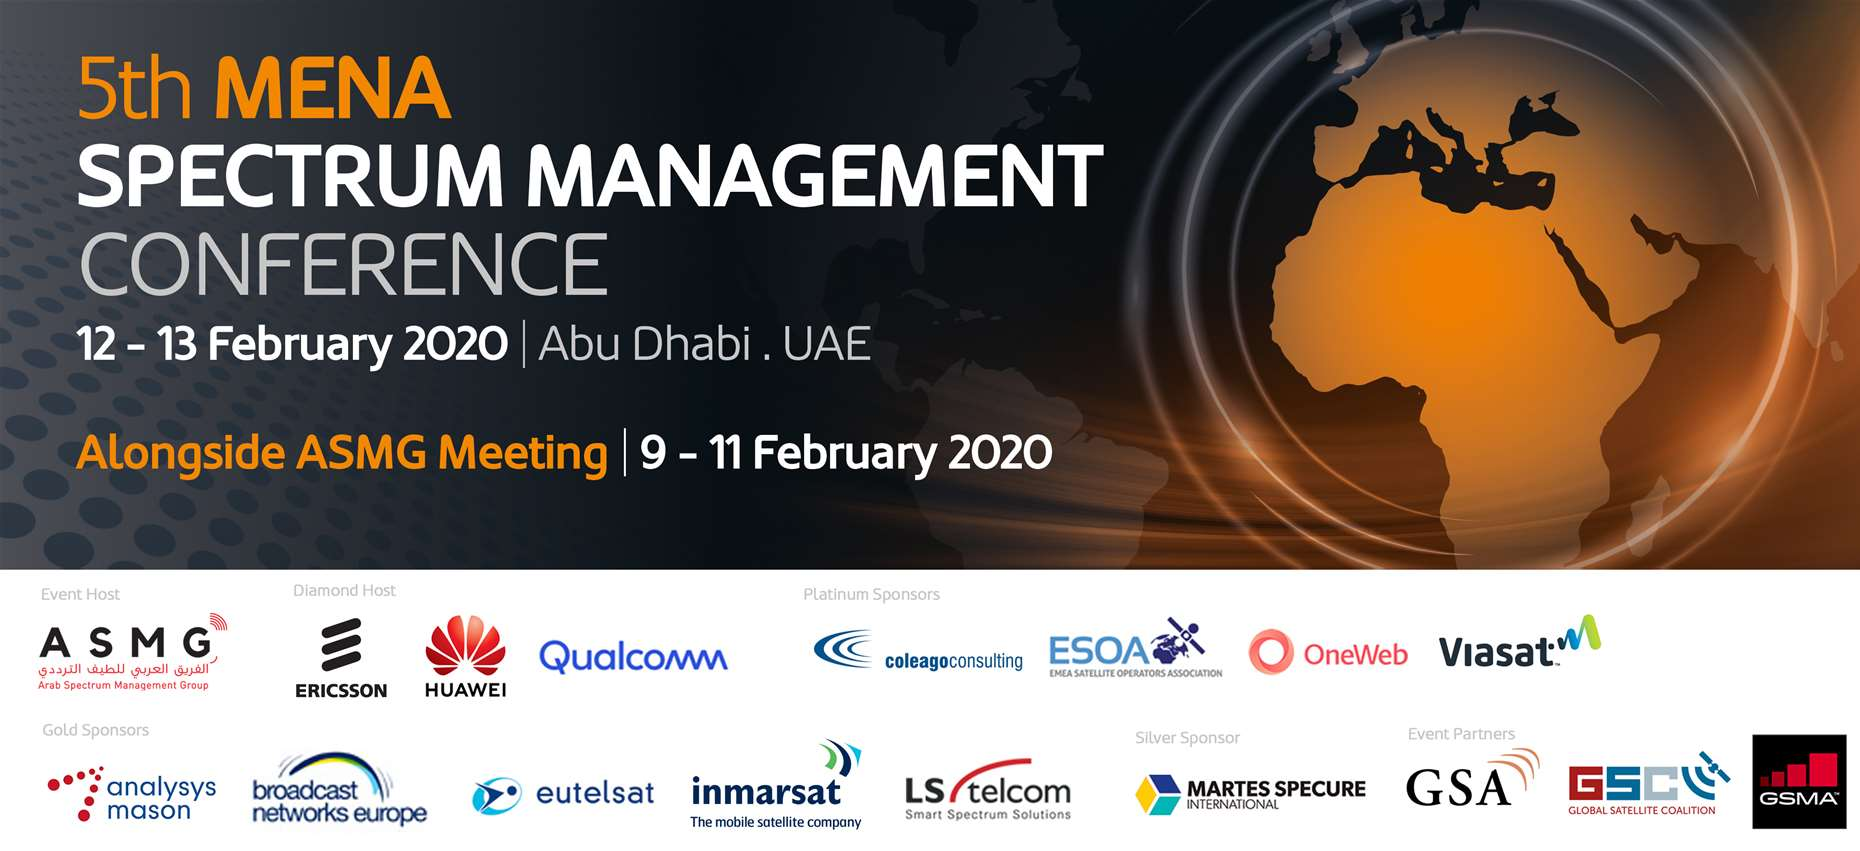 The 5th MENA Spectrum Management Conference